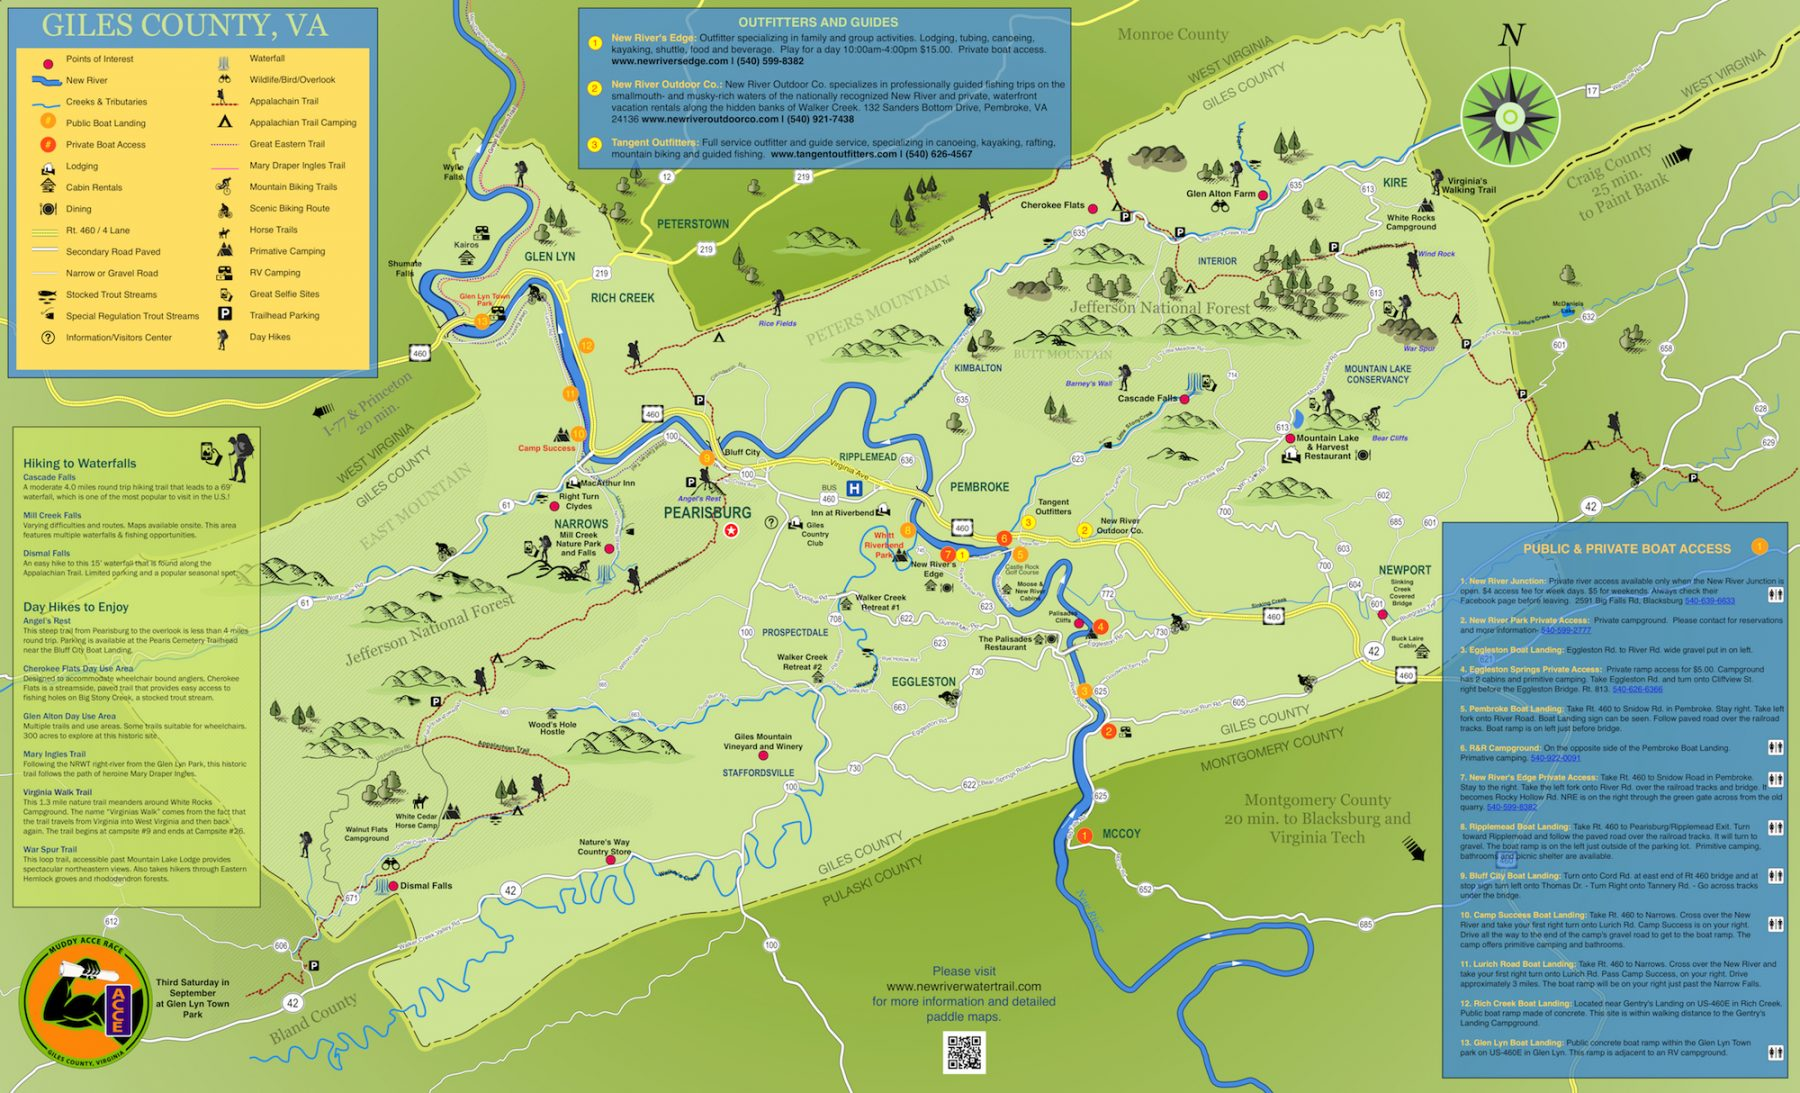 you can roll over the hot spots on the map below to view more information or you can download this map in pdf format